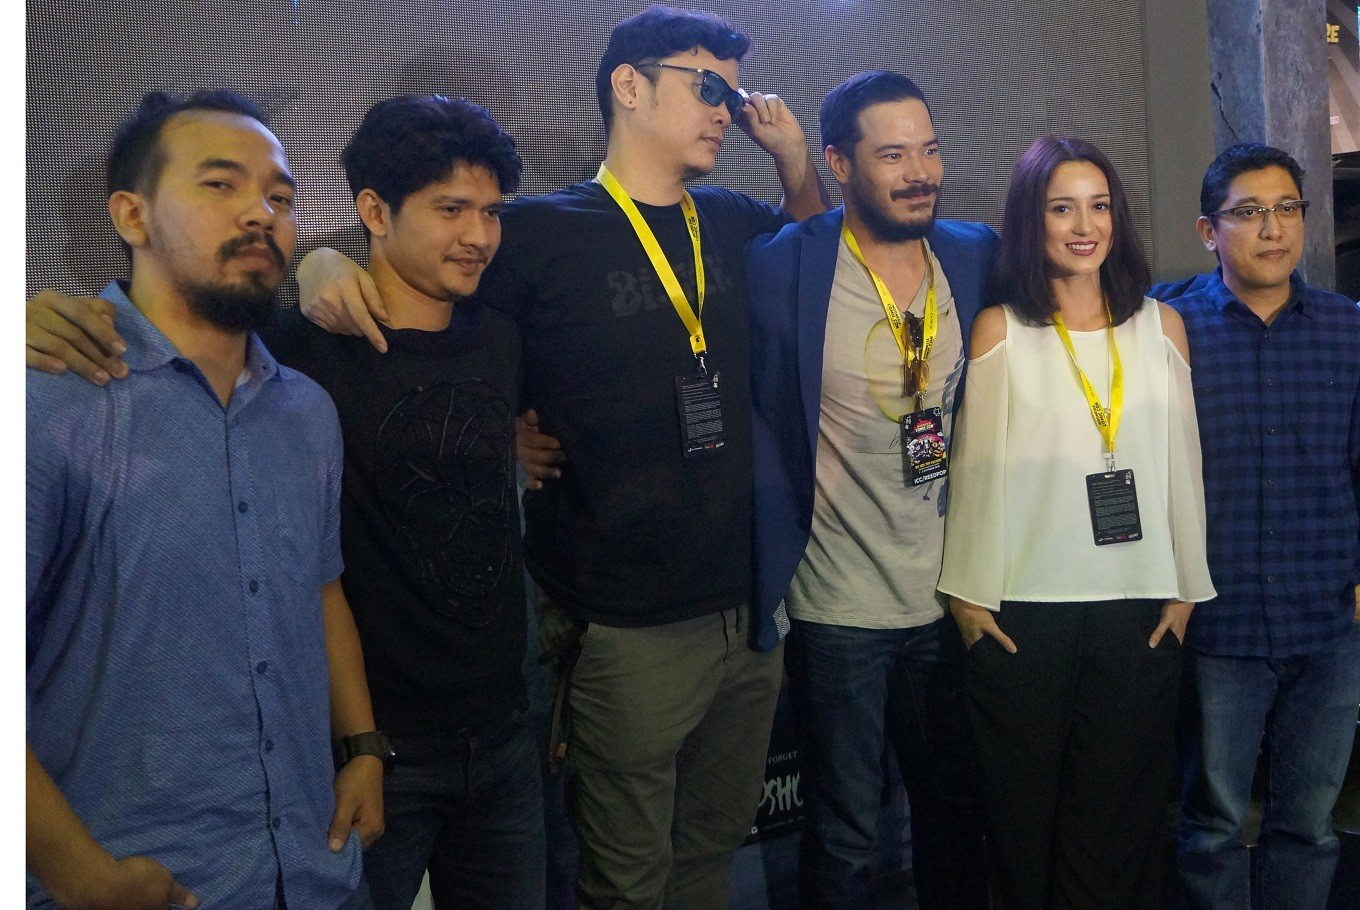 Festivalgoers get peek at Iko Uwais' latest film 'Headshot'